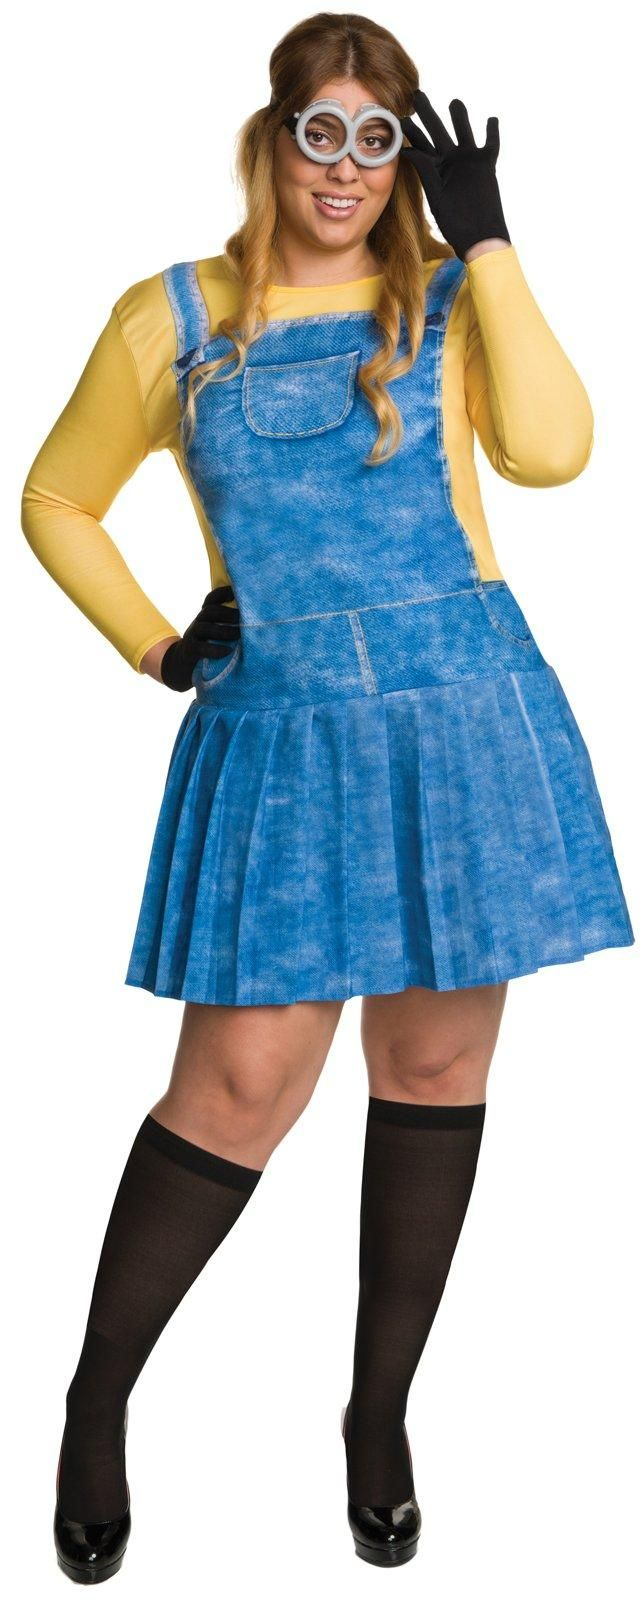 Minions Movie: Womens Minion Costume from Buycostumes.com